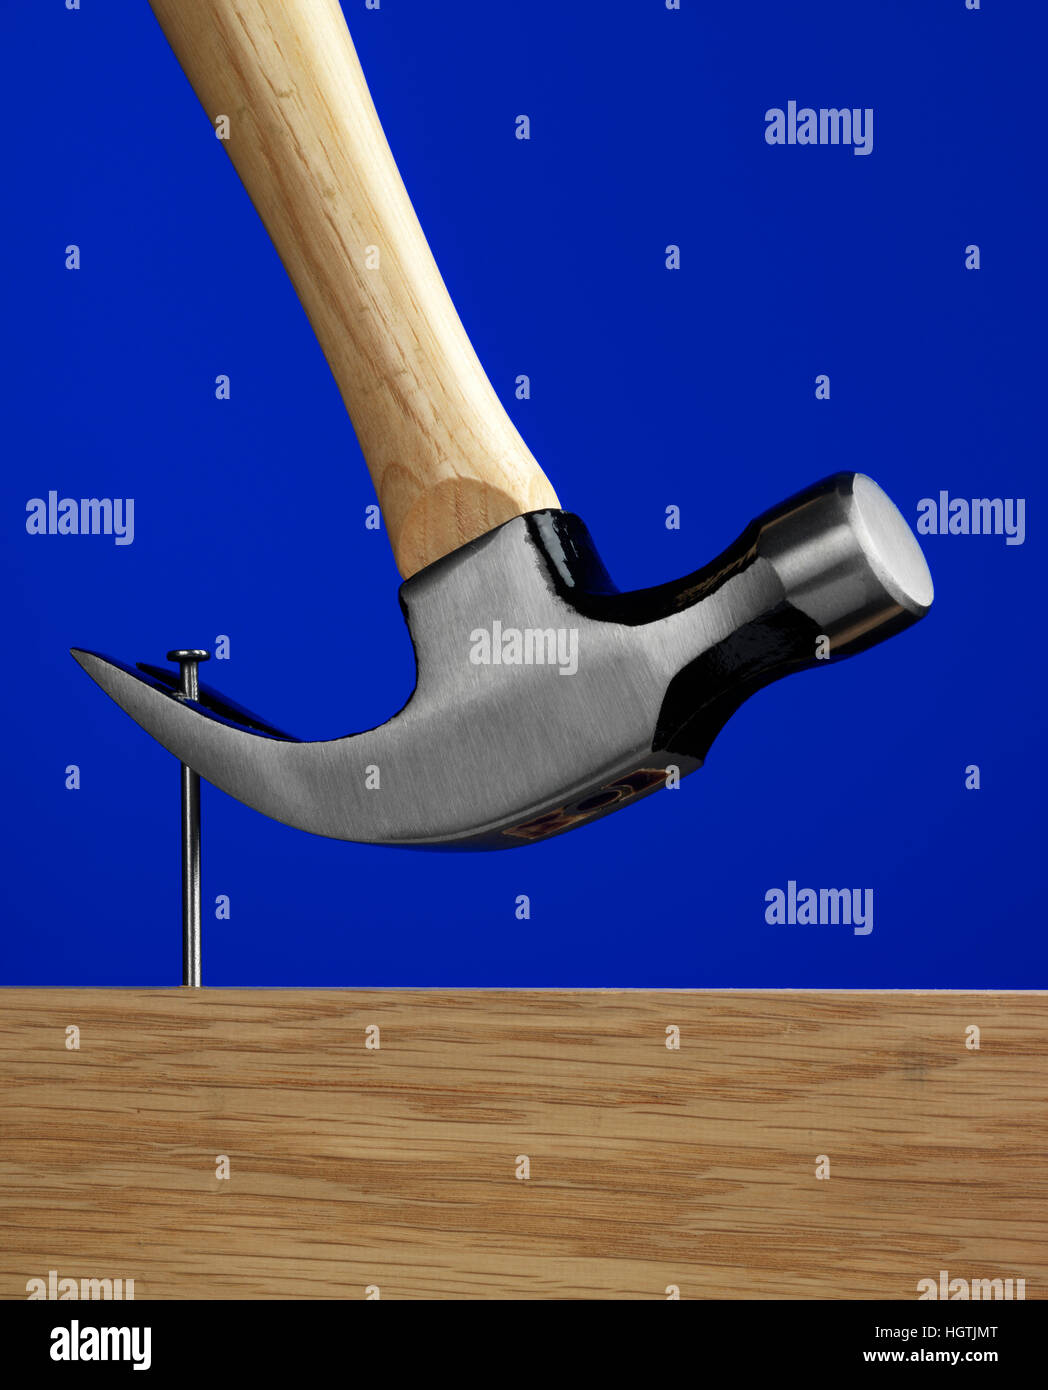 Hammer with a blue background - Stock Image